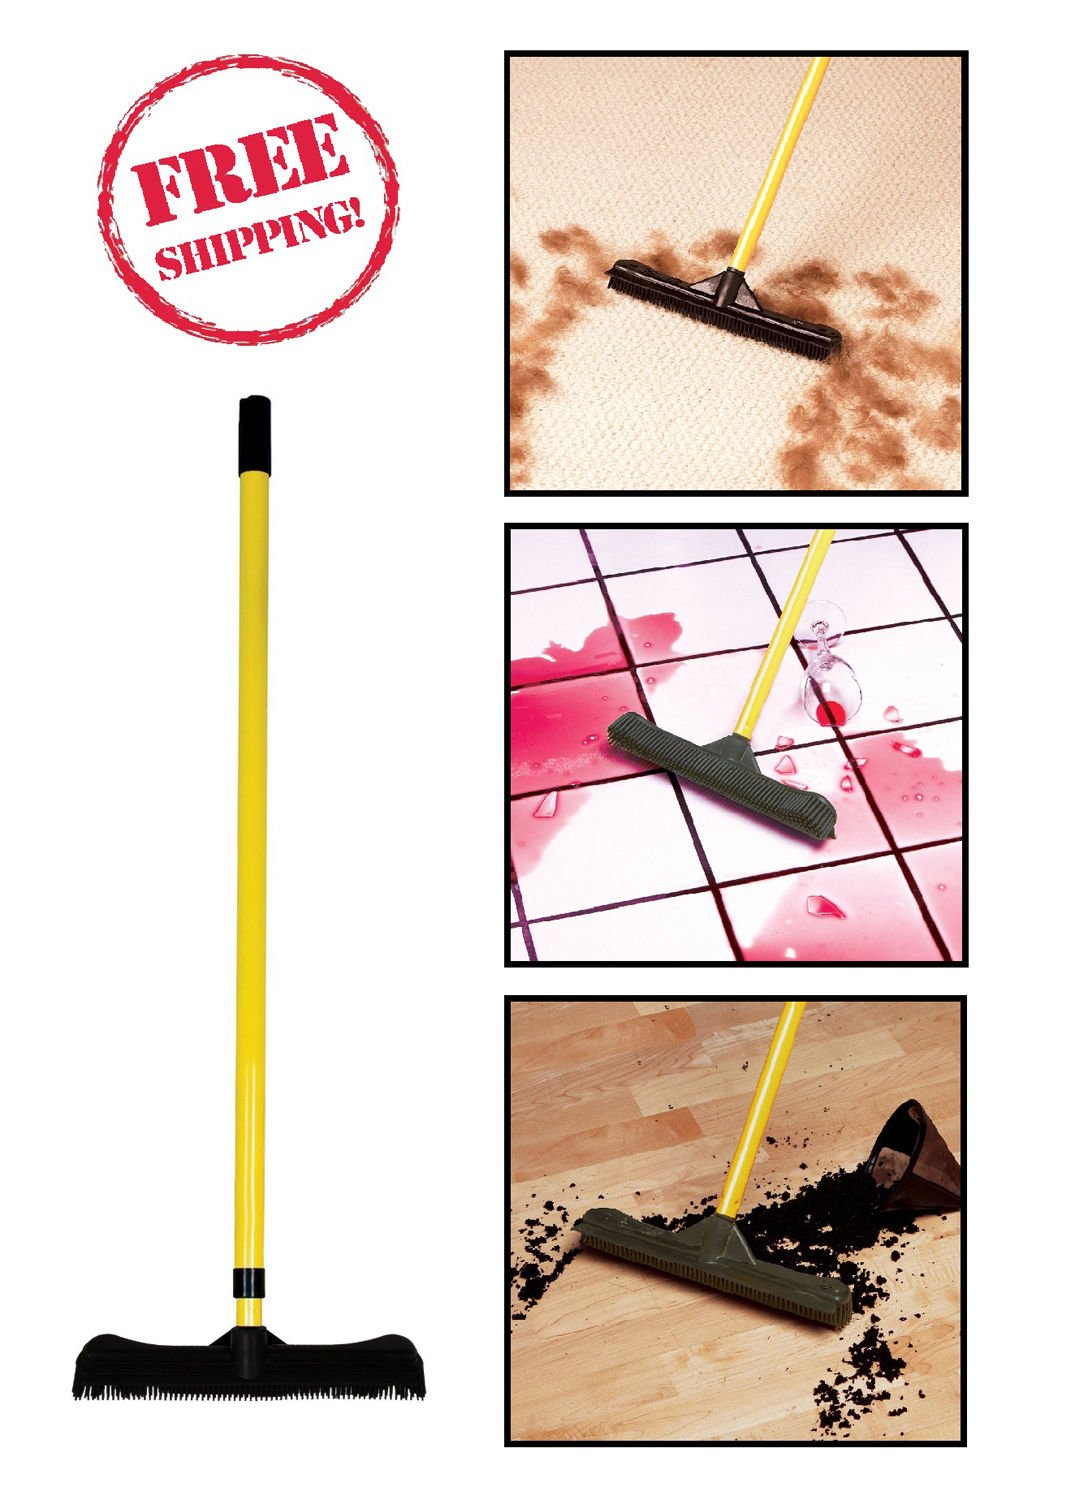 Amazon.com : Evriholder FURemover / Rubber Broom Brush Quality Sweep HQ Home Cleaning Mop NEW : Everything Else